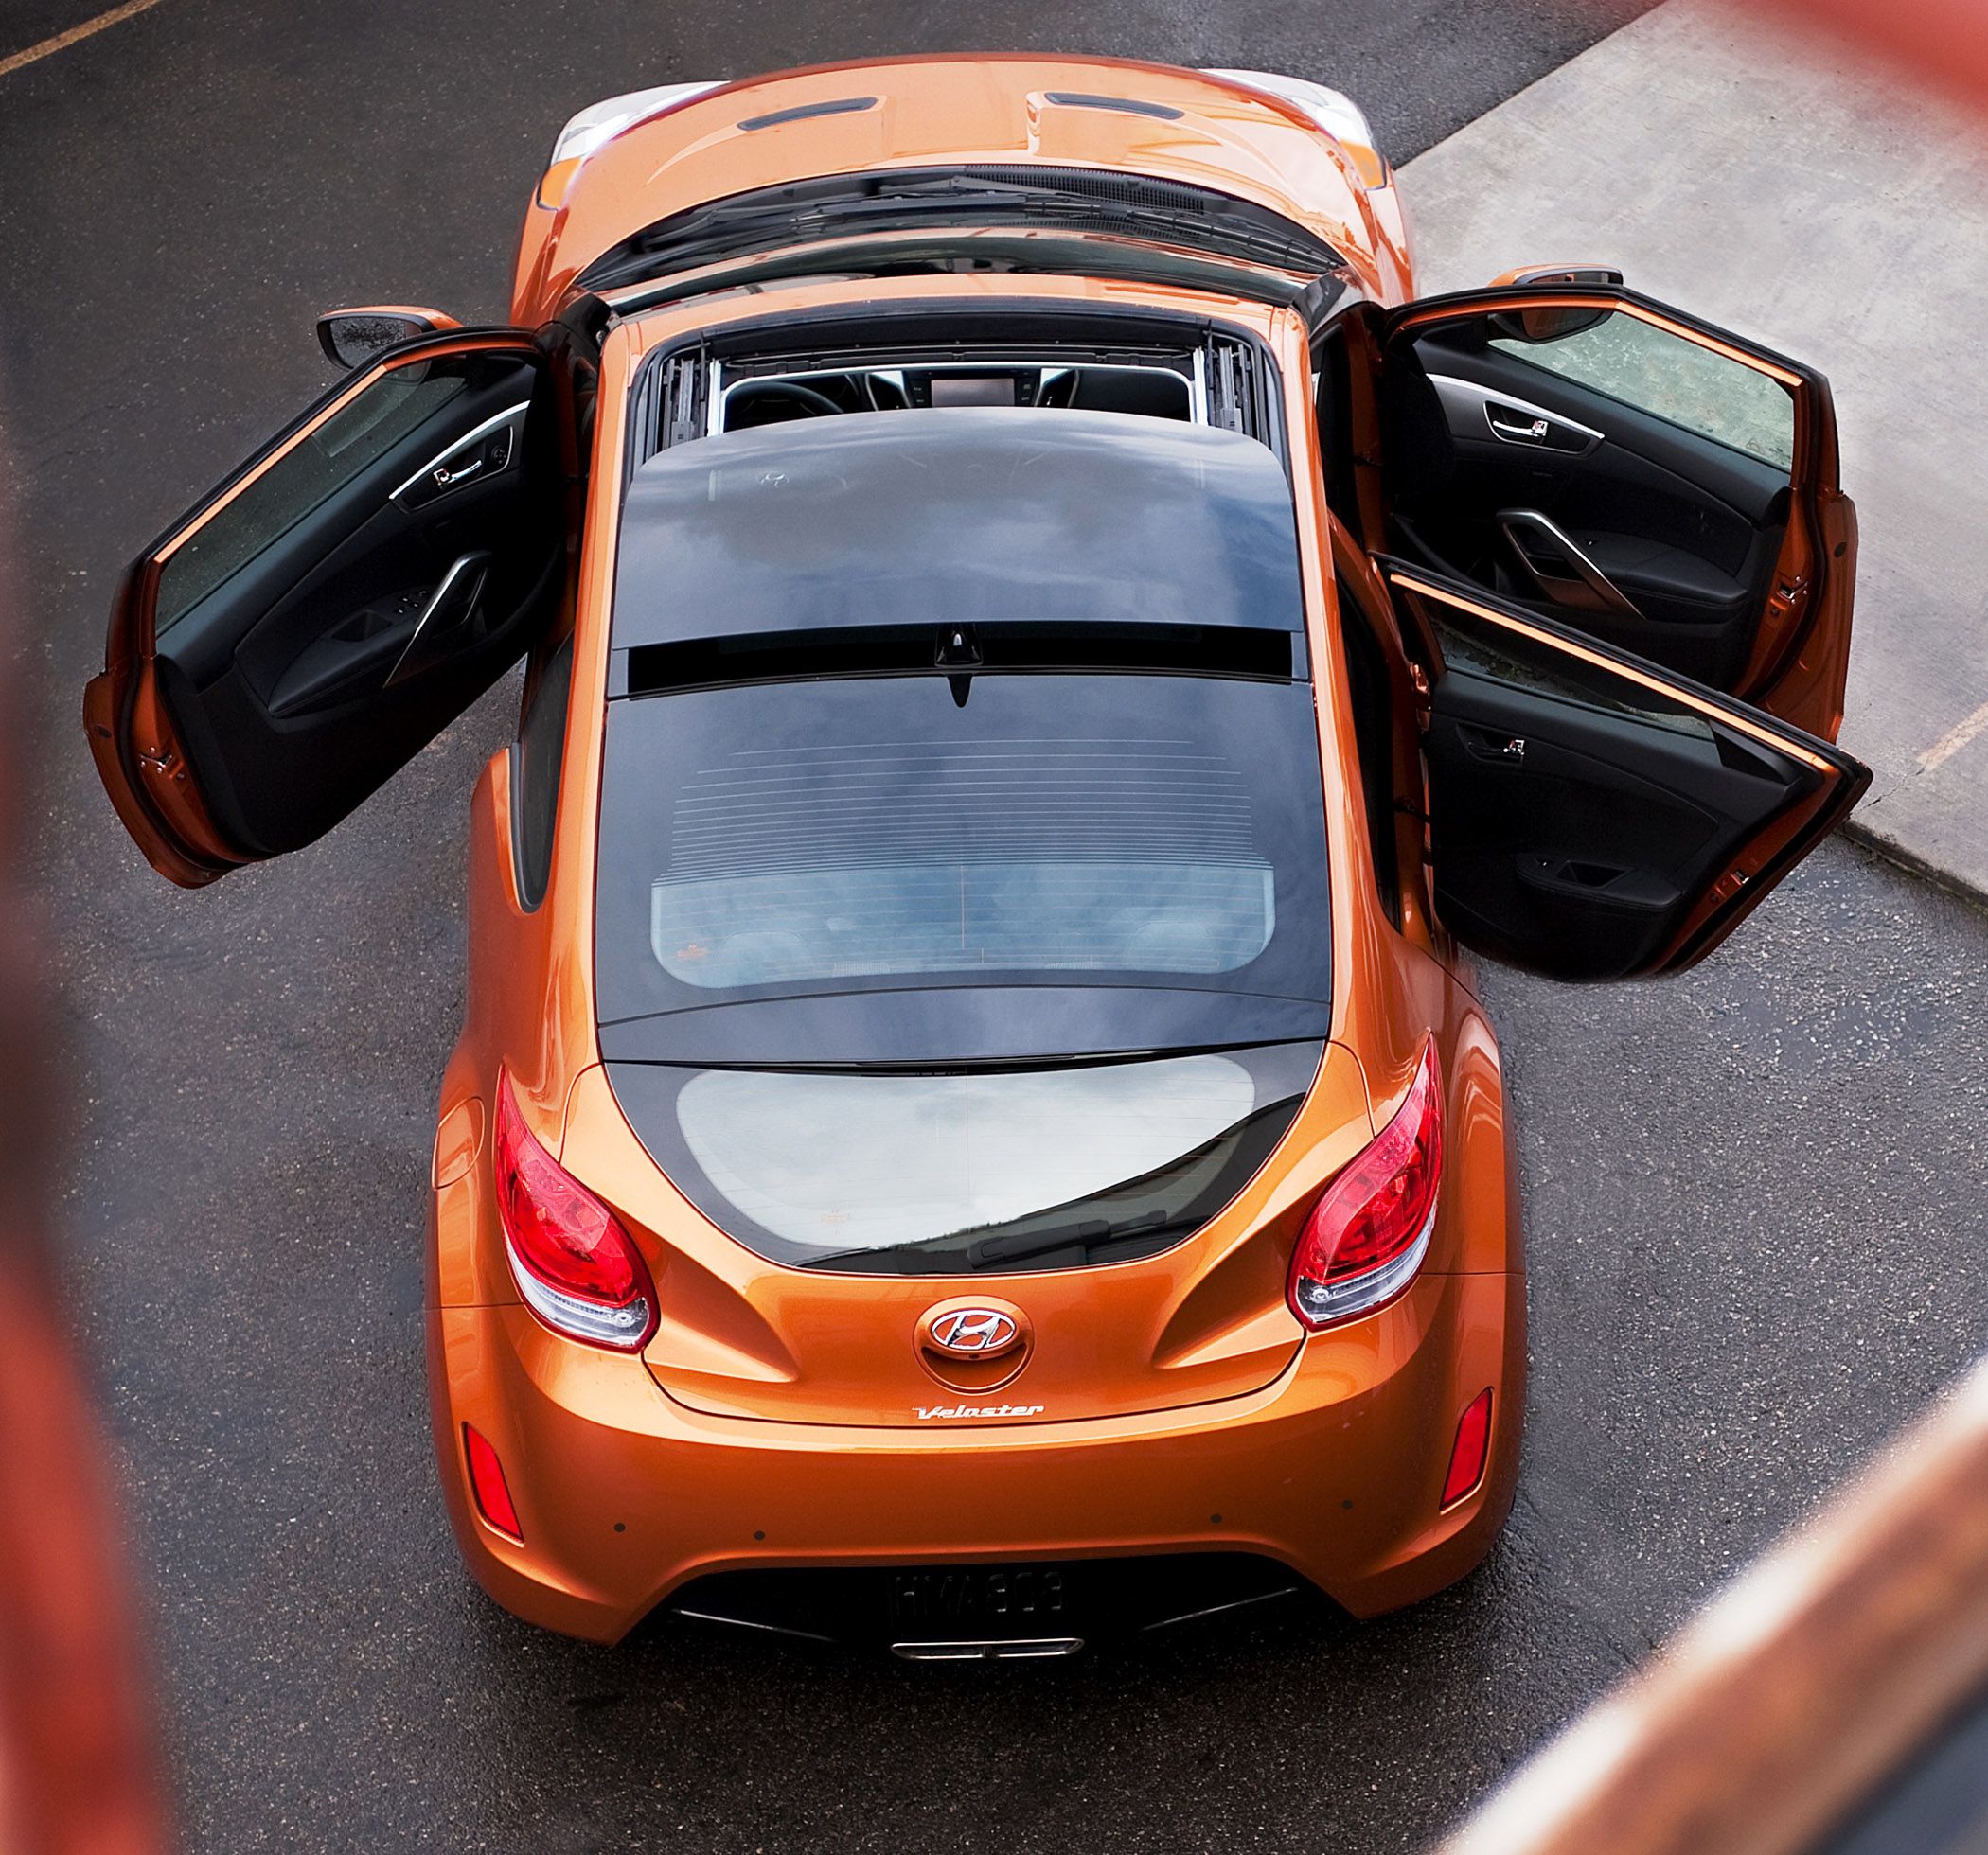 Le Meilleur New For 2012 Hyundai Veloster 3 Door Compact Coupe Down Ce Mois Ci